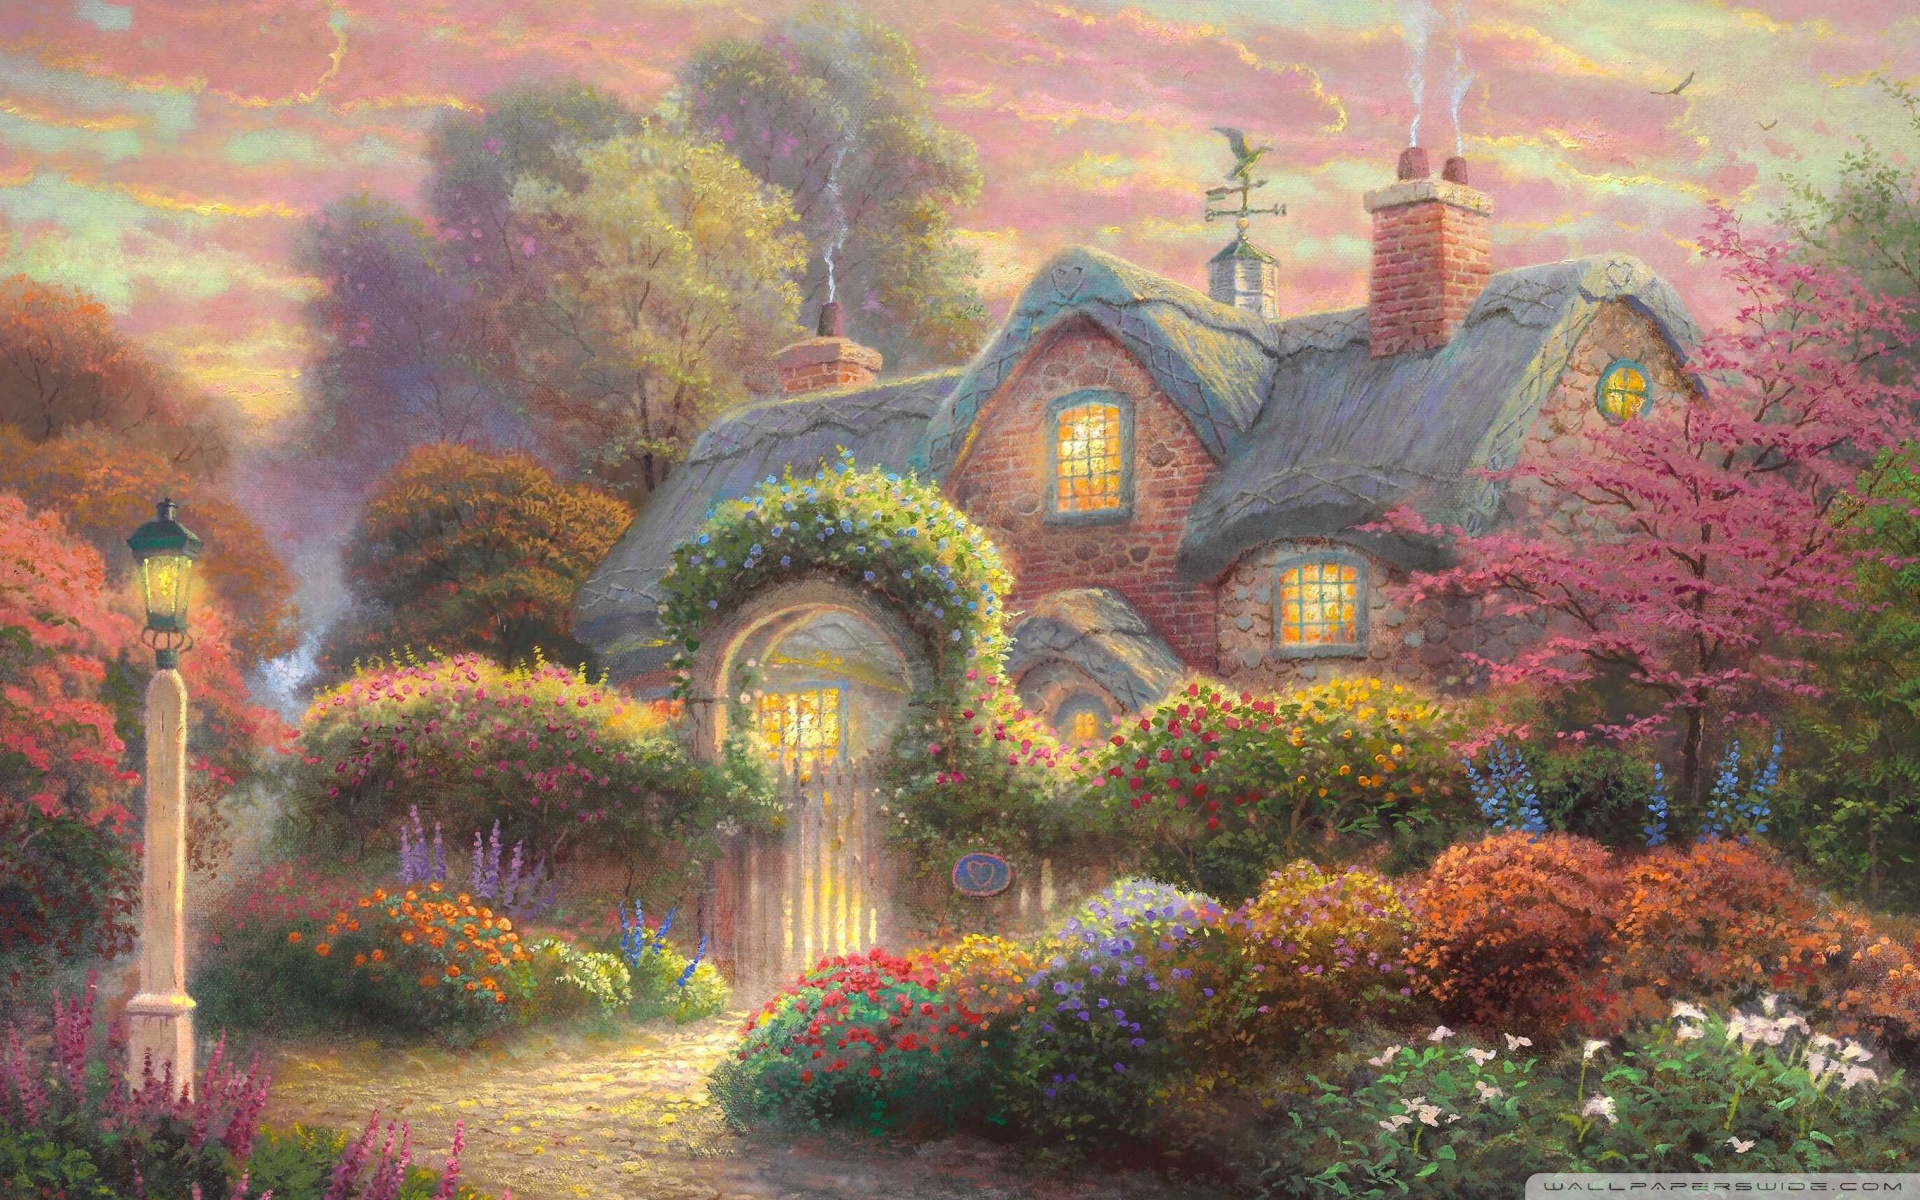 Cute Cartoon Wallpapers For Mobile Hd Fairytale Cottage Painting 4k Hd Desktop Wallpaper For 4k